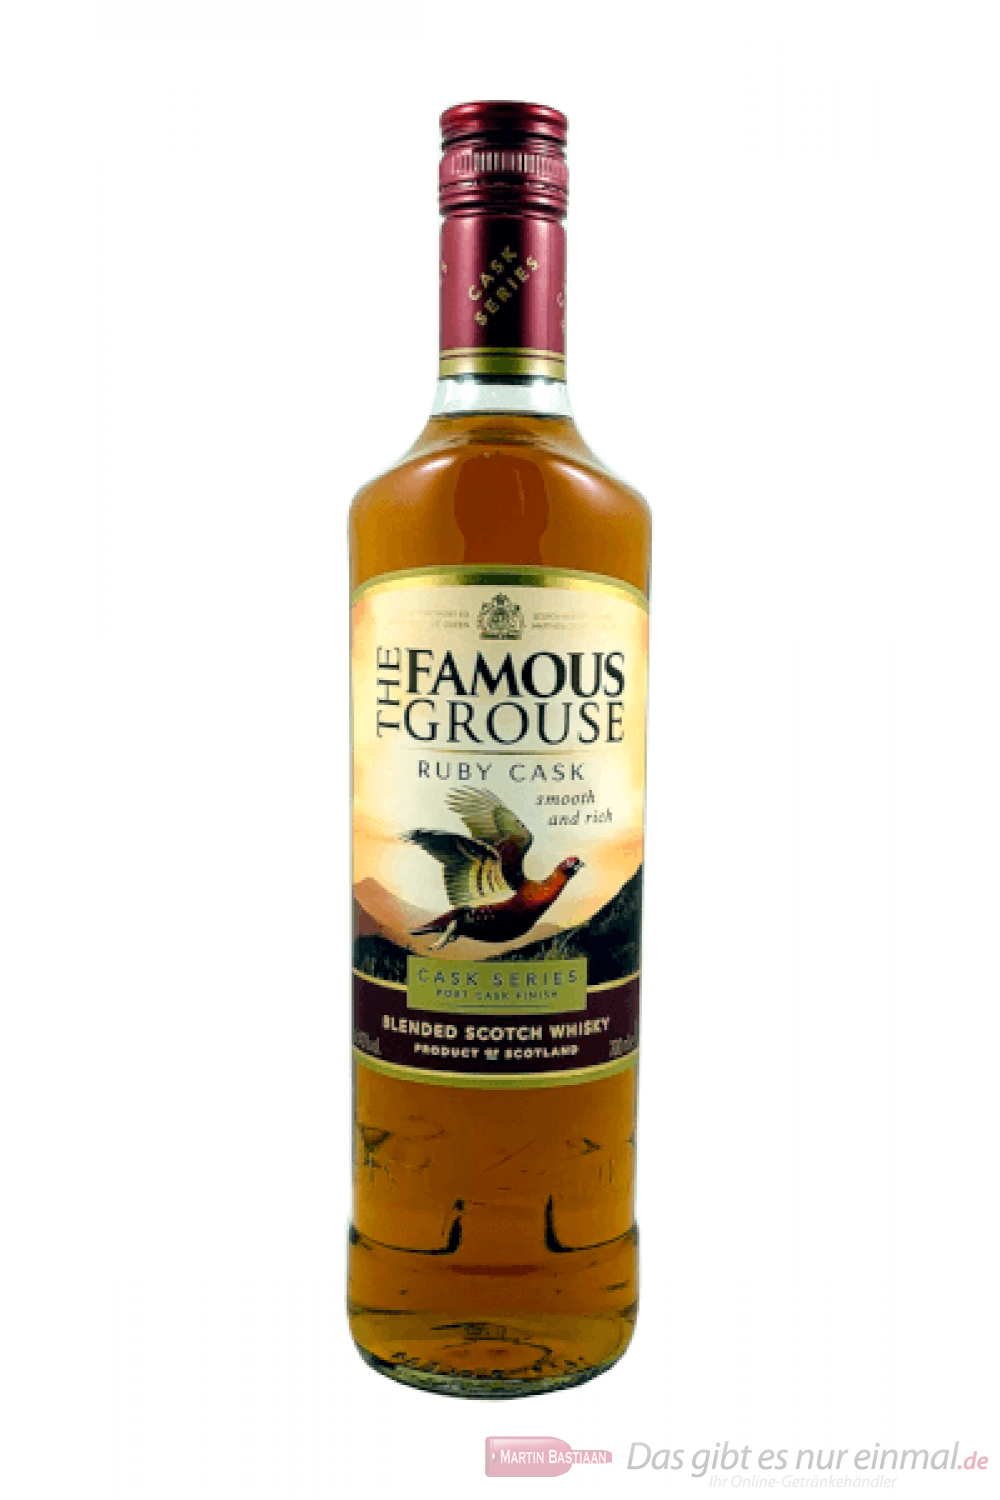 The Famous Grouse Ruby Cask Finish Blended Scotch Whisky 0,7l